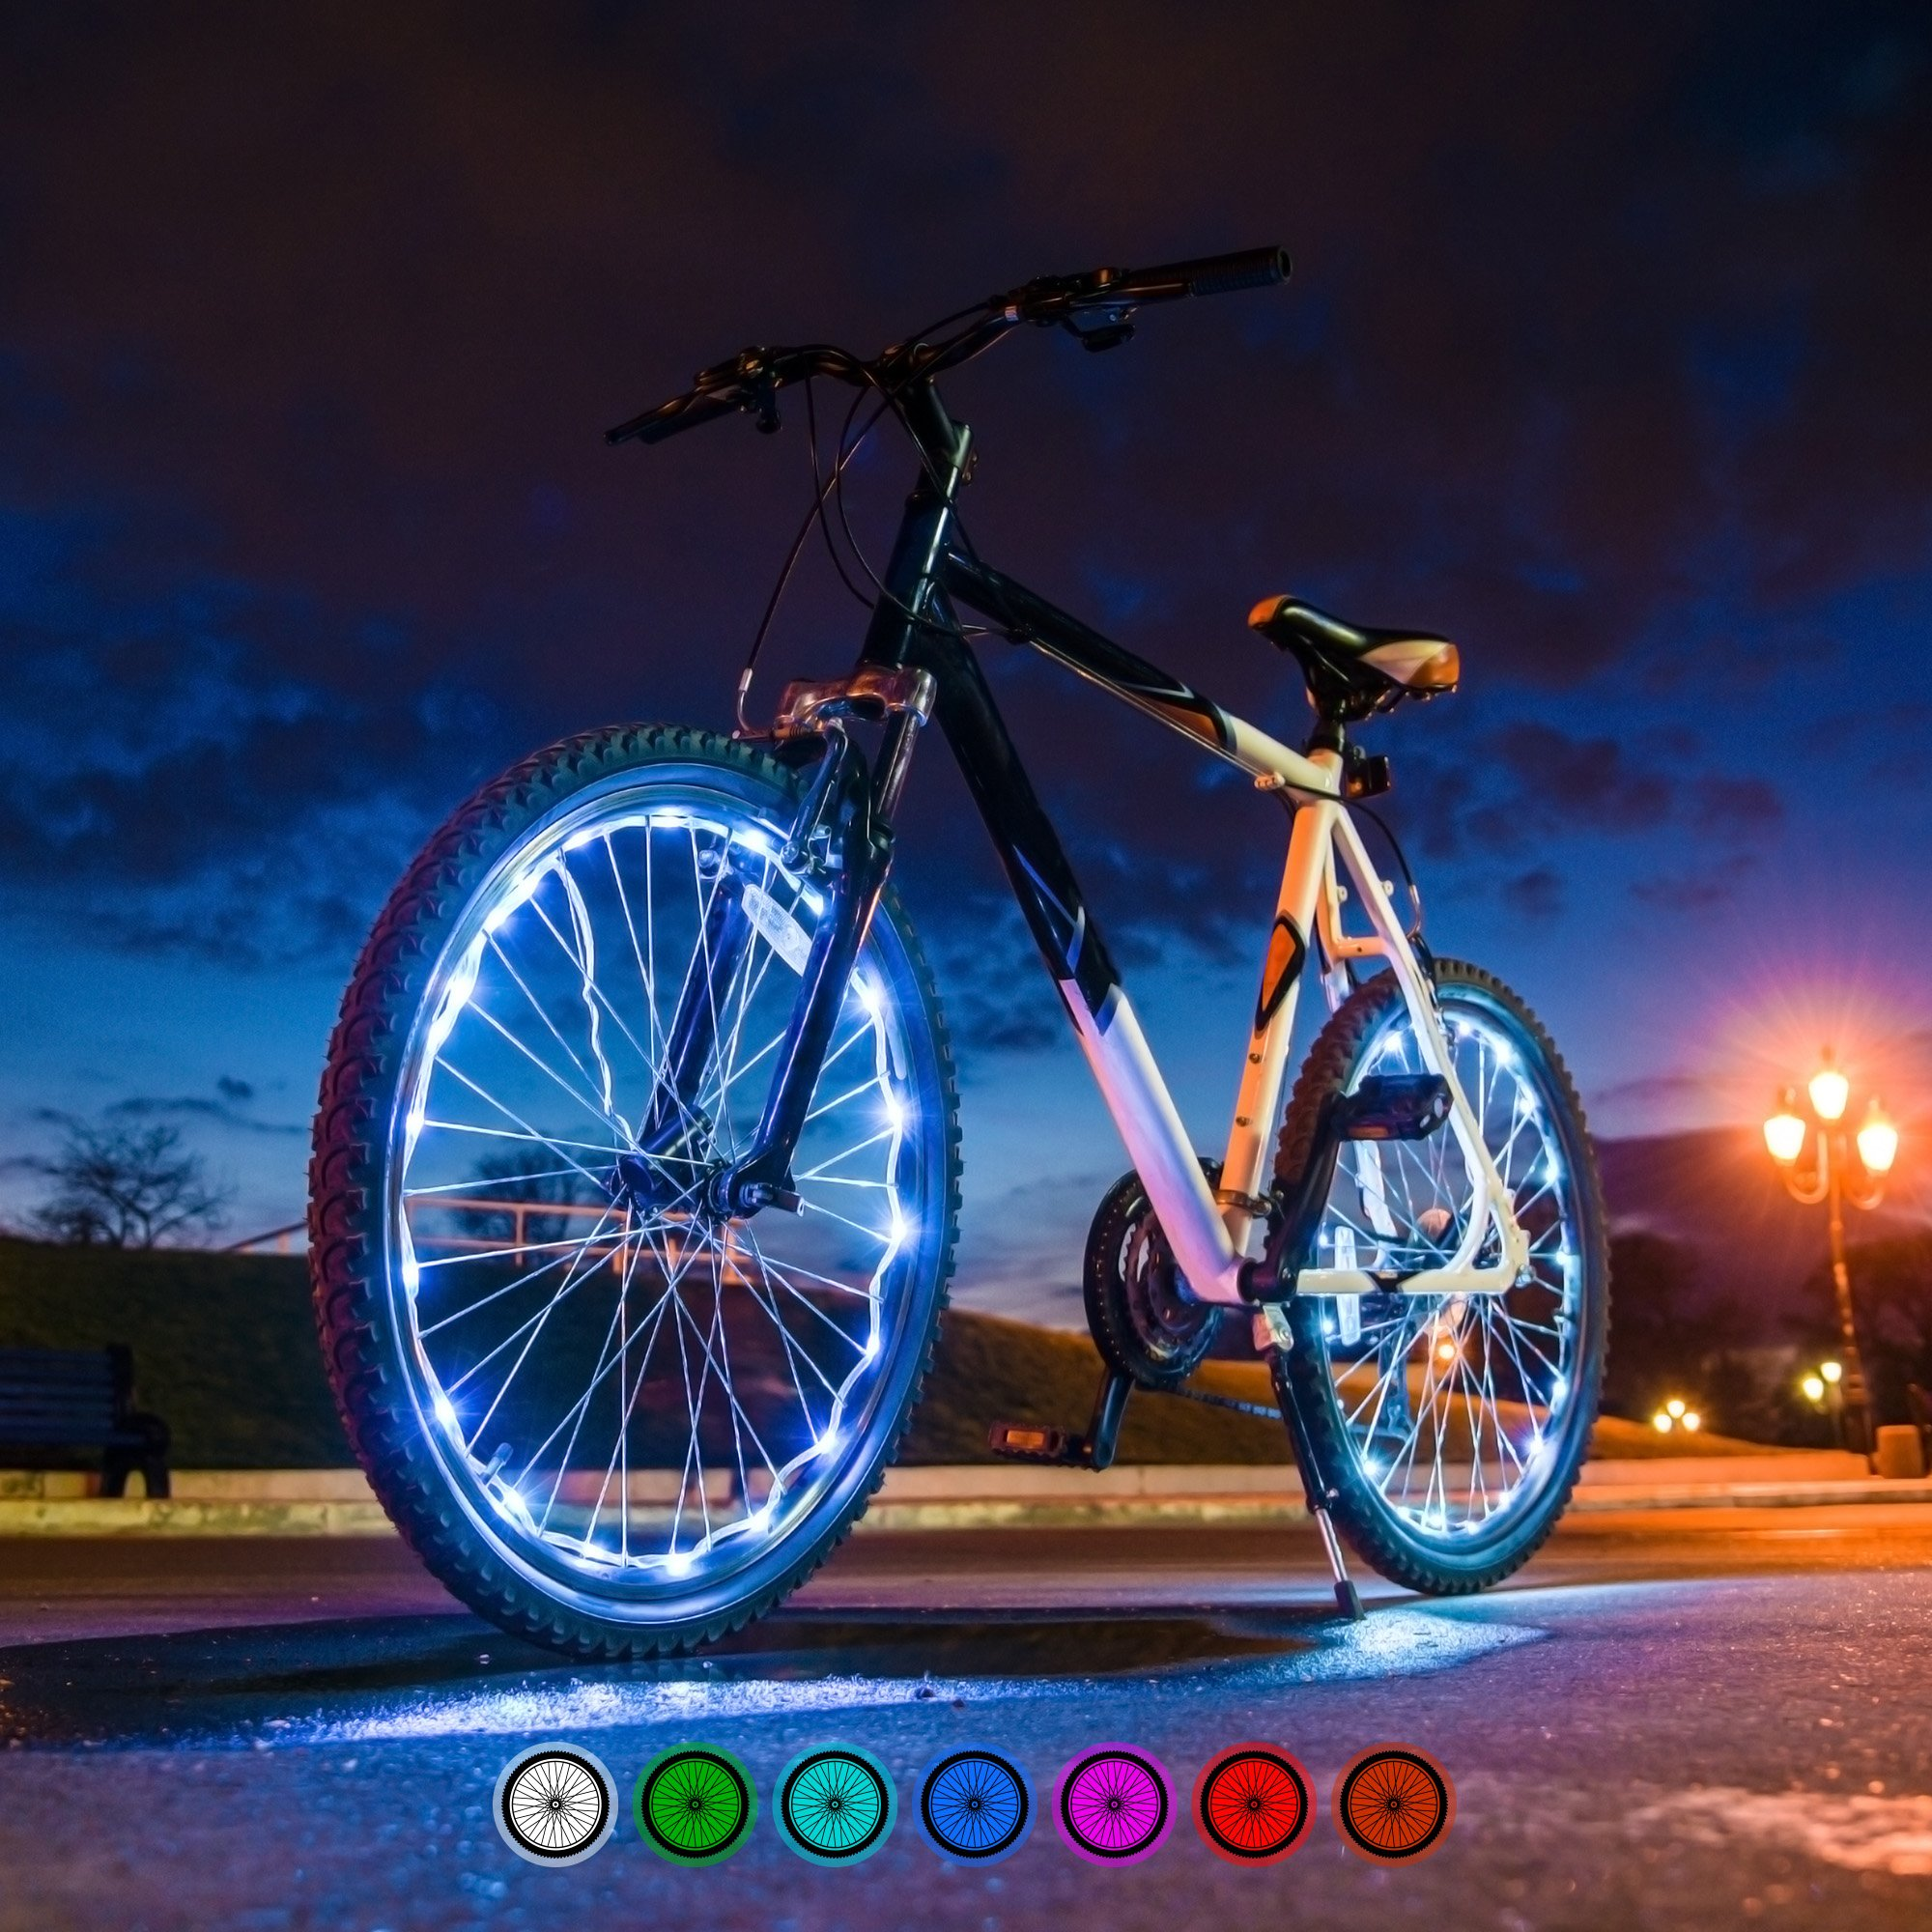 Bright Spokes Premium LED Bike Wheel Lights | 7 Colors in 1 | USB Rechargeable Battery | Strong Silicone Tube Cover | 18 Modes | Best Gift for all ages | 5, 6, 7, 8, 9 + year old boy gifts (1 Tire) by Gear Nation (Image #9)